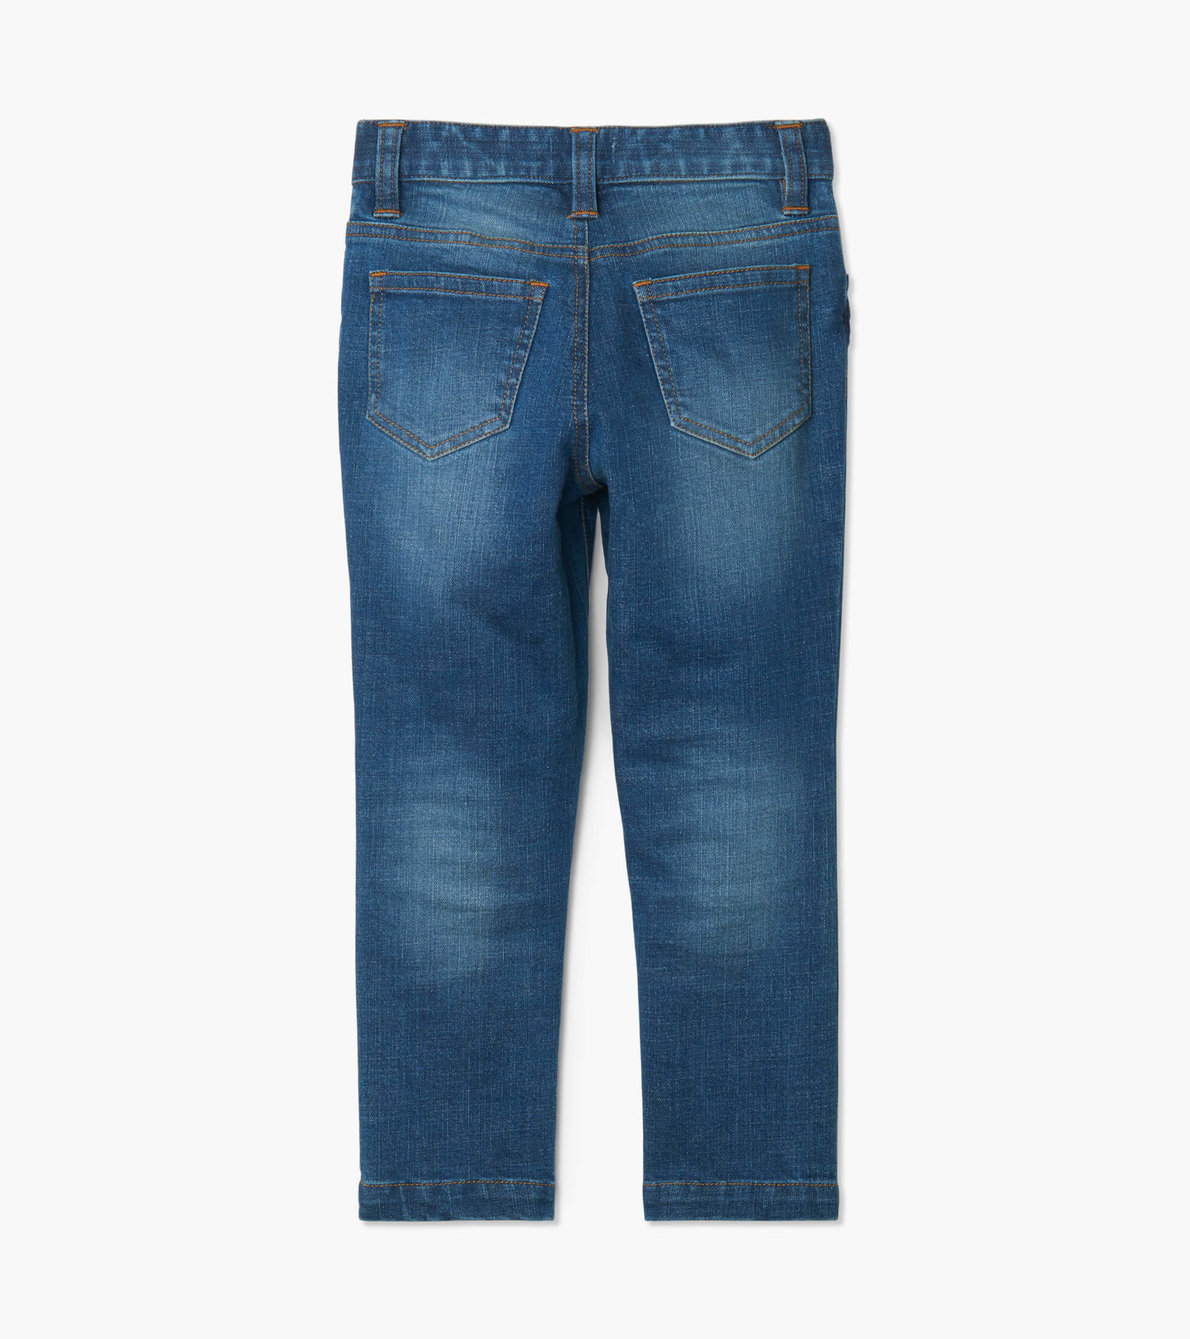 View larger image of Navy Stretch Denim Pant